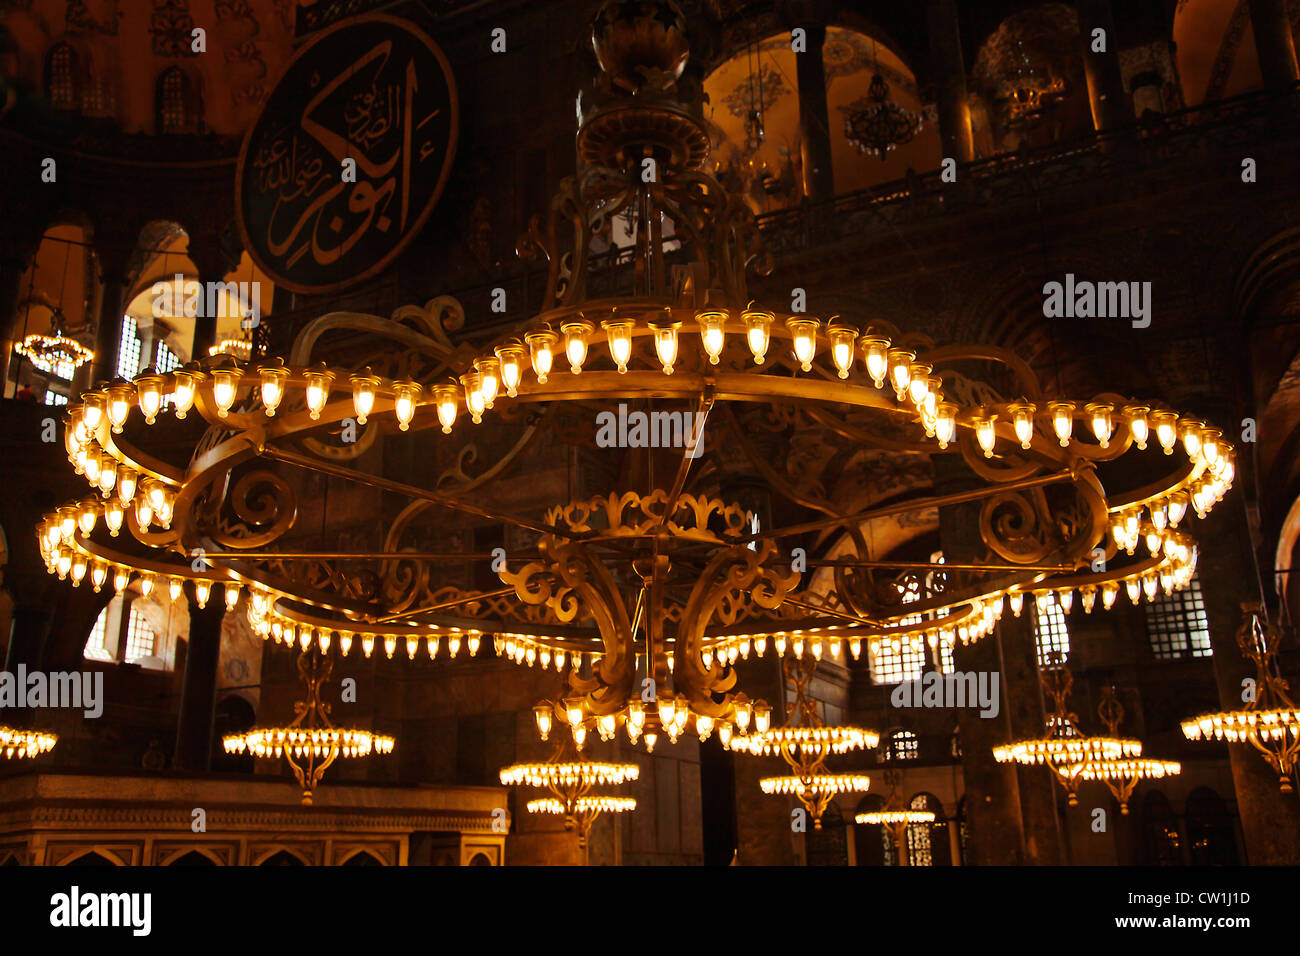 Grand chandeliers in the main hall of hagia sophia istanbul turkey grand chandeliers in the main hall of hagia sophia istanbul turkey a religious monument of historical significance aloadofball Images